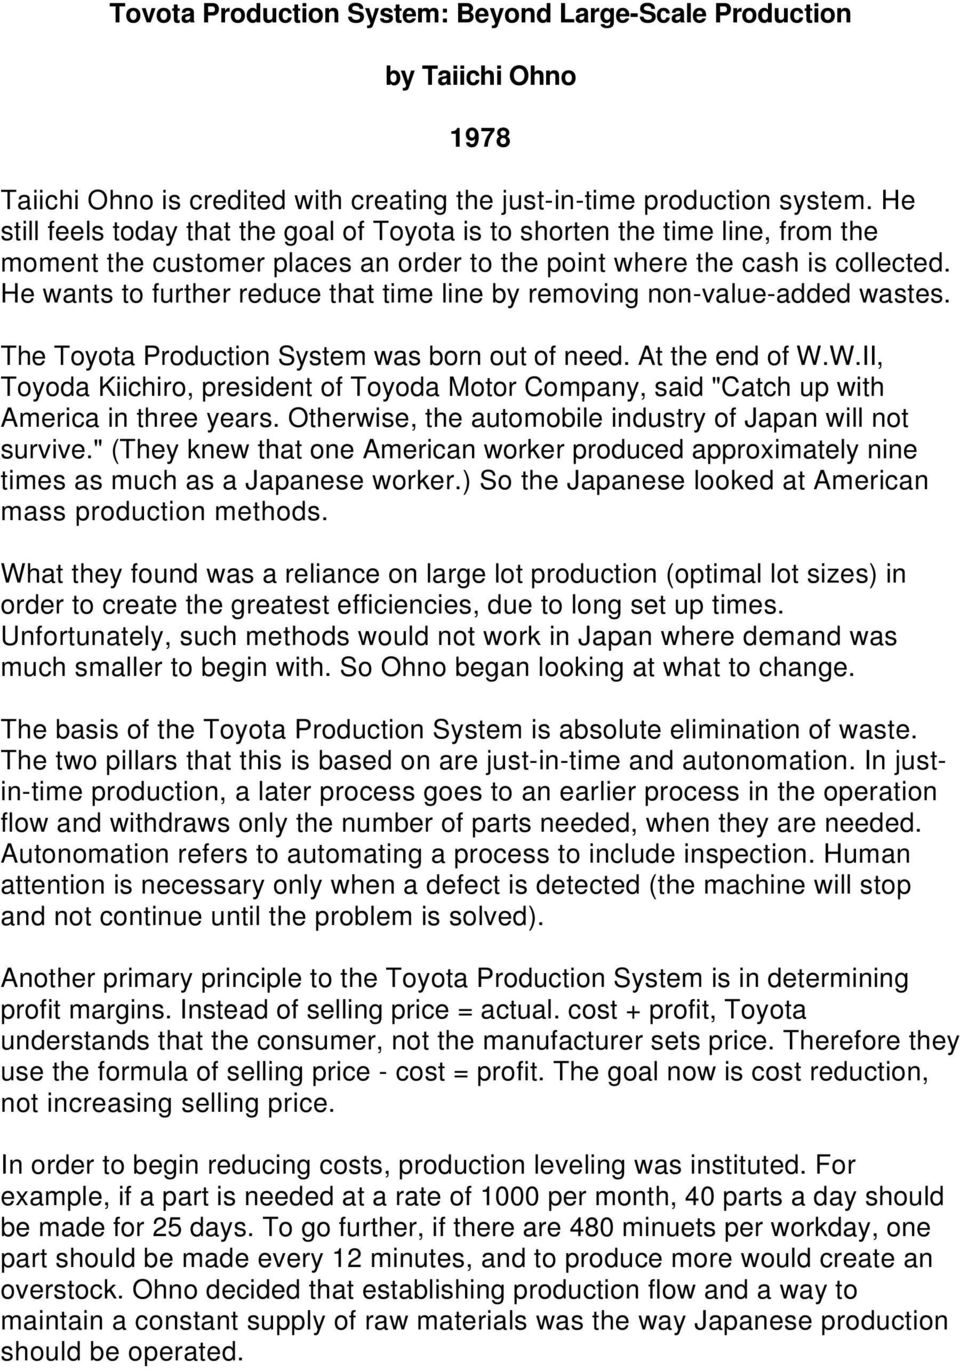 He wants to further reduce that time line by removing non-value-added wastes. The Toyota Production System was born out of need. At the end of W.